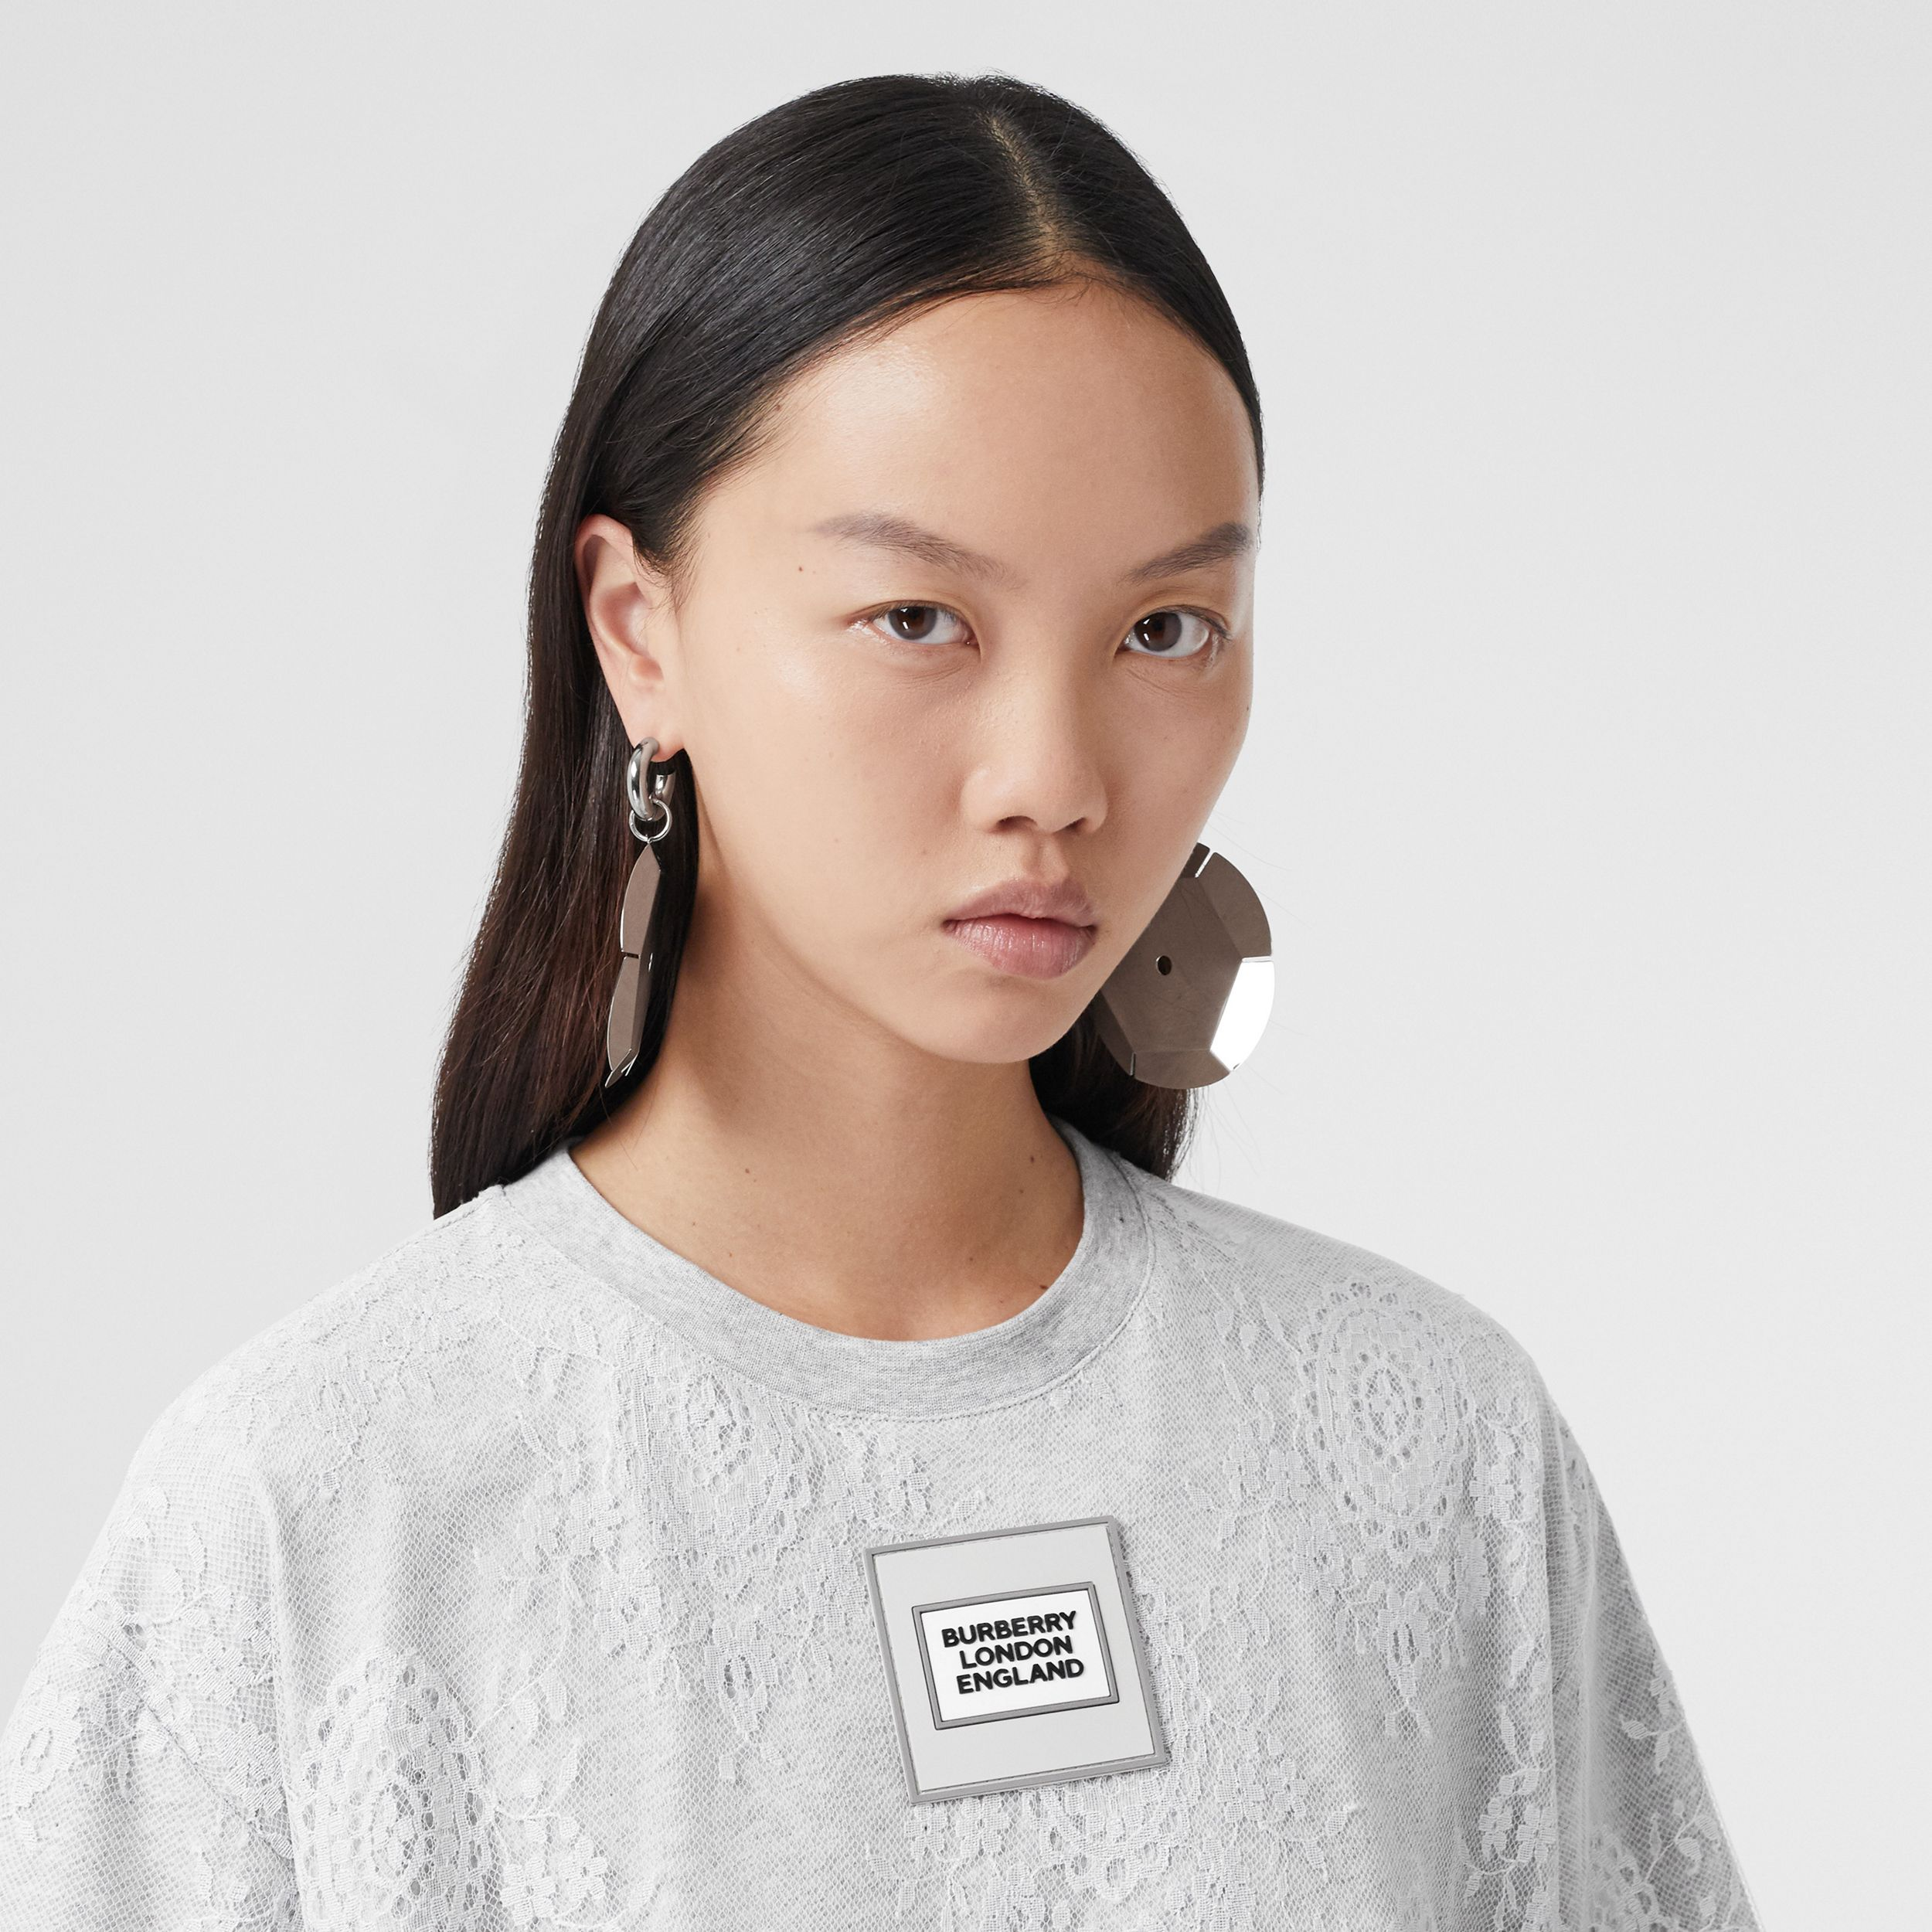 Logo Appliqué Lace Oversized T-shirt in Light Pebble Grey - Women | Burberry - 2